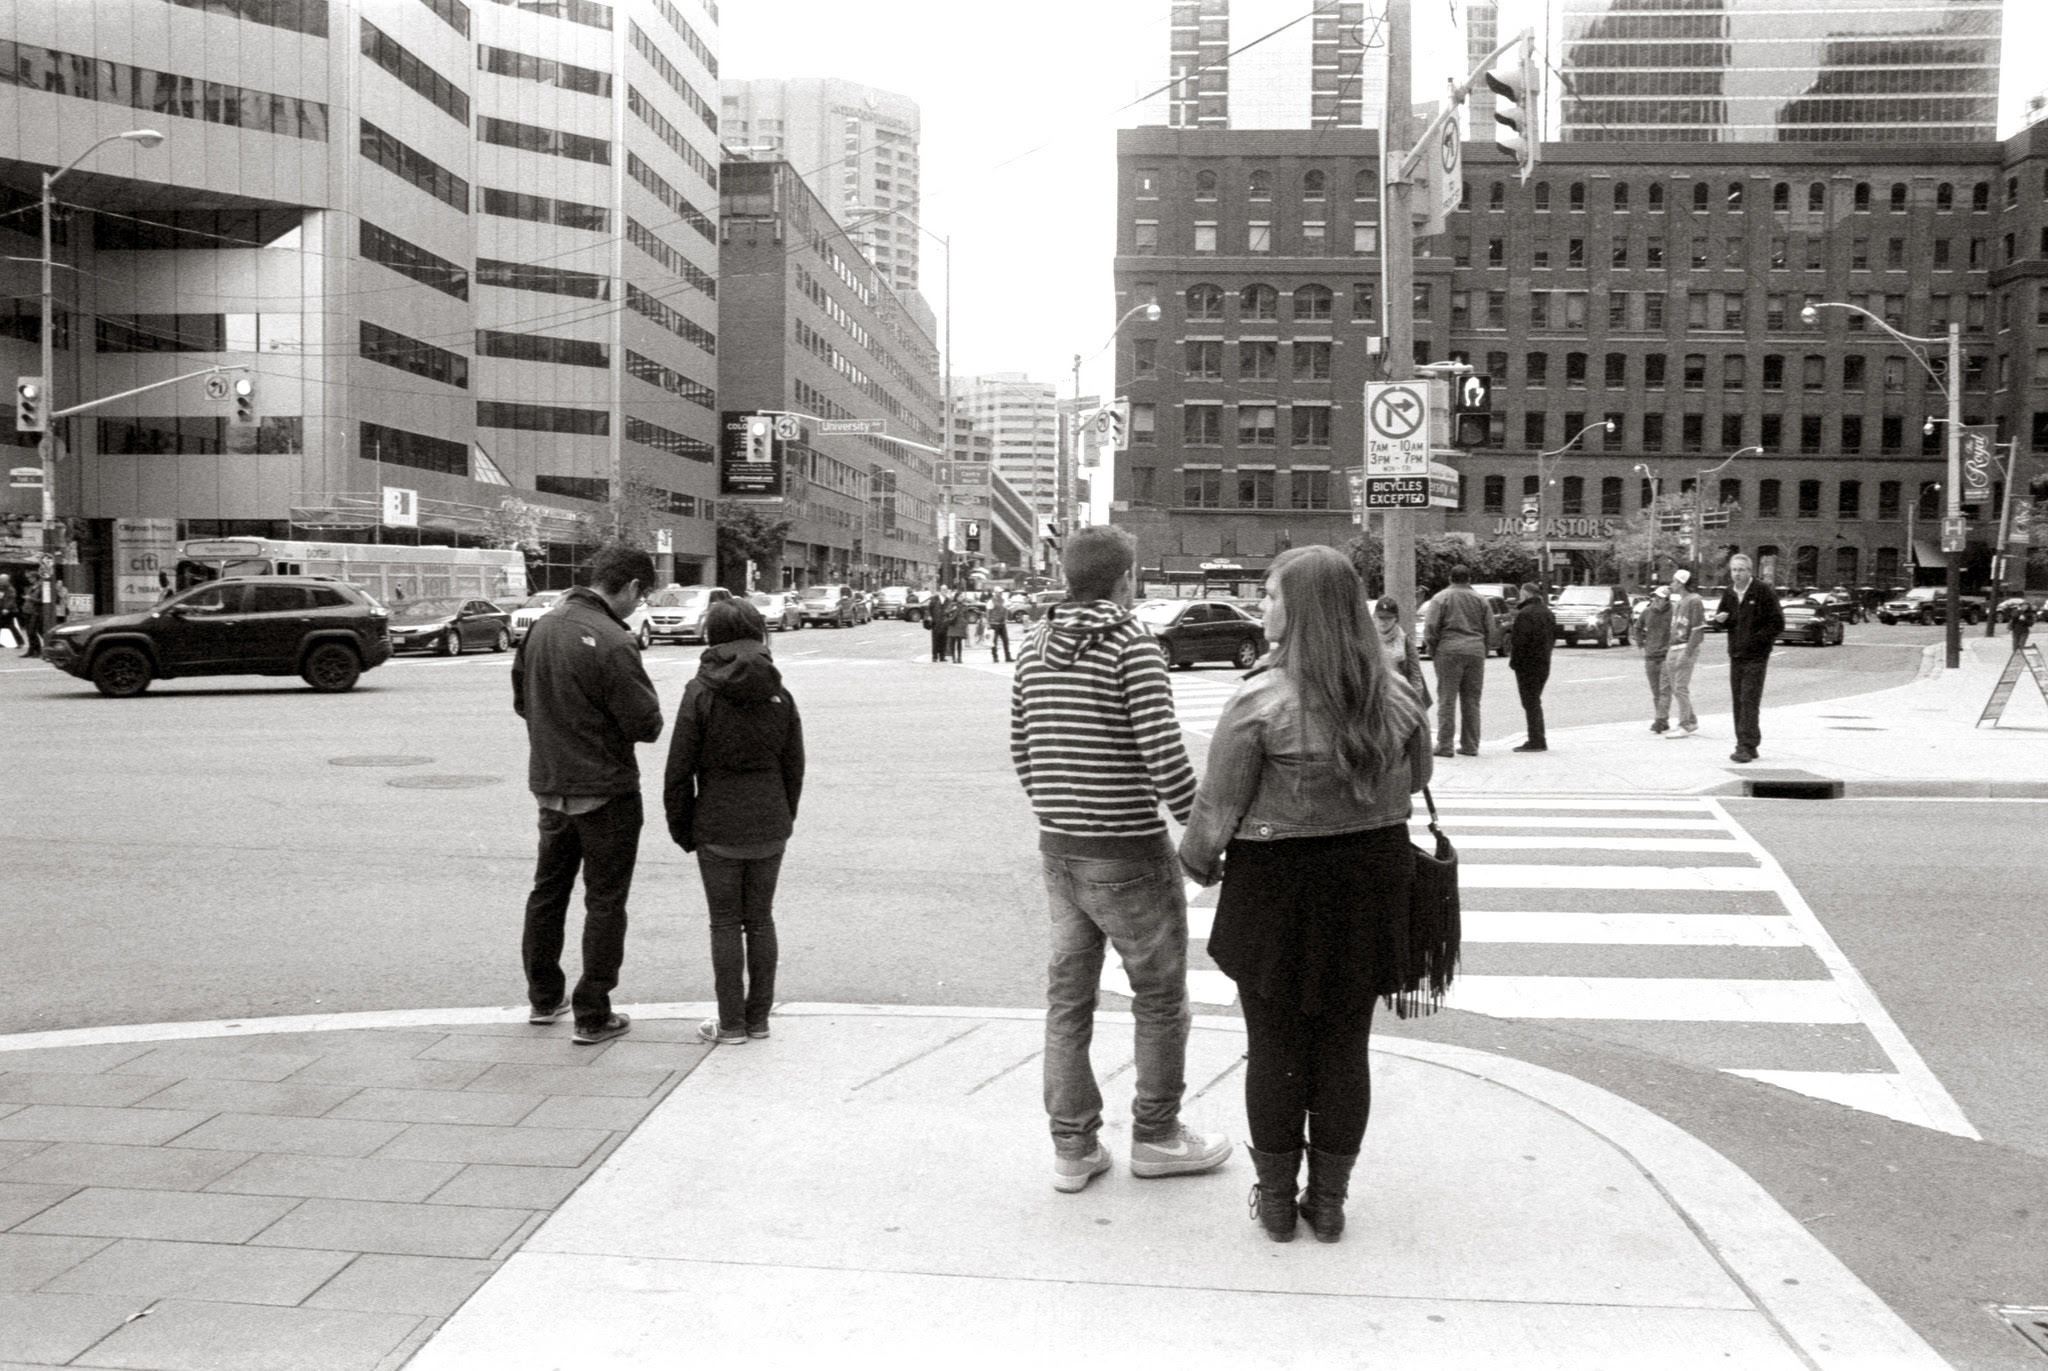 Waiting at York and Front St - Olympus OM-2n - Zuiko 28mm f/3.5 - Ilford HP5 400 - HC110(B)